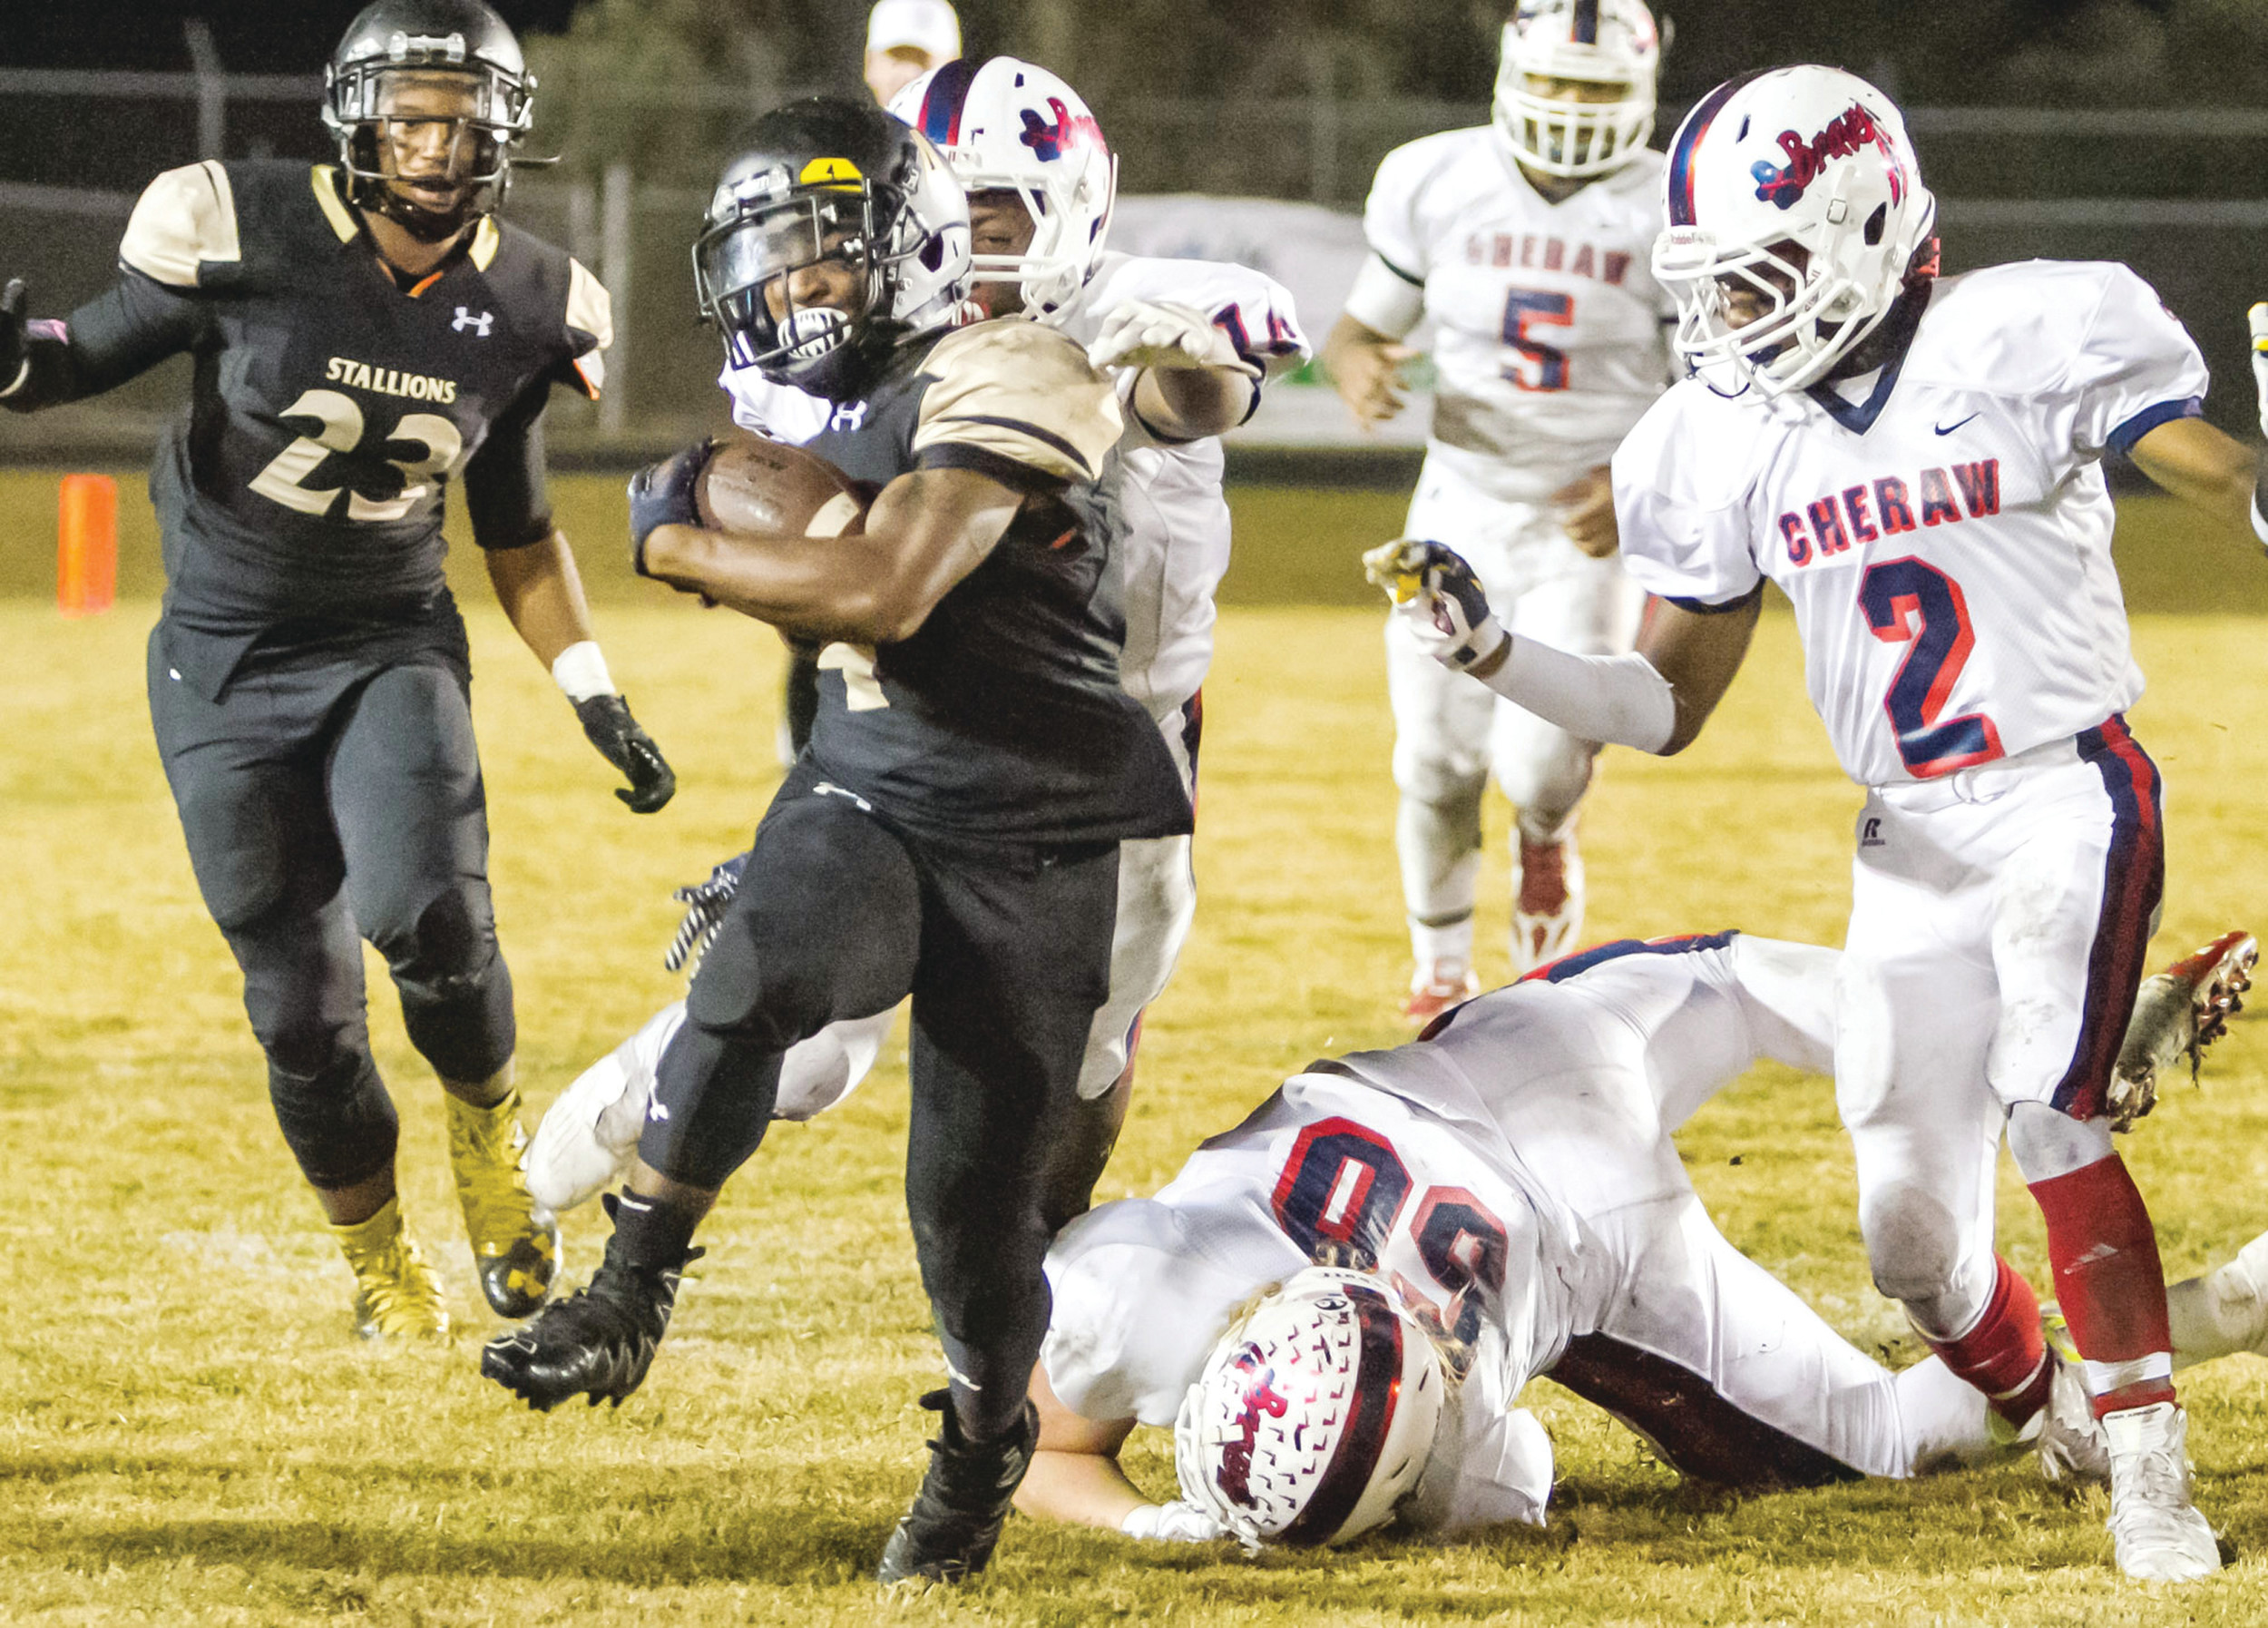 Lee Central  running back  Demetrius  Dubose (4)  slips away  from a would-be  tackler during  the Stallions'  regular-season  game against  Cheraw. Lee  Central travels  to face Saluda  today in the  quarterfinals of the 2A state playoffs.